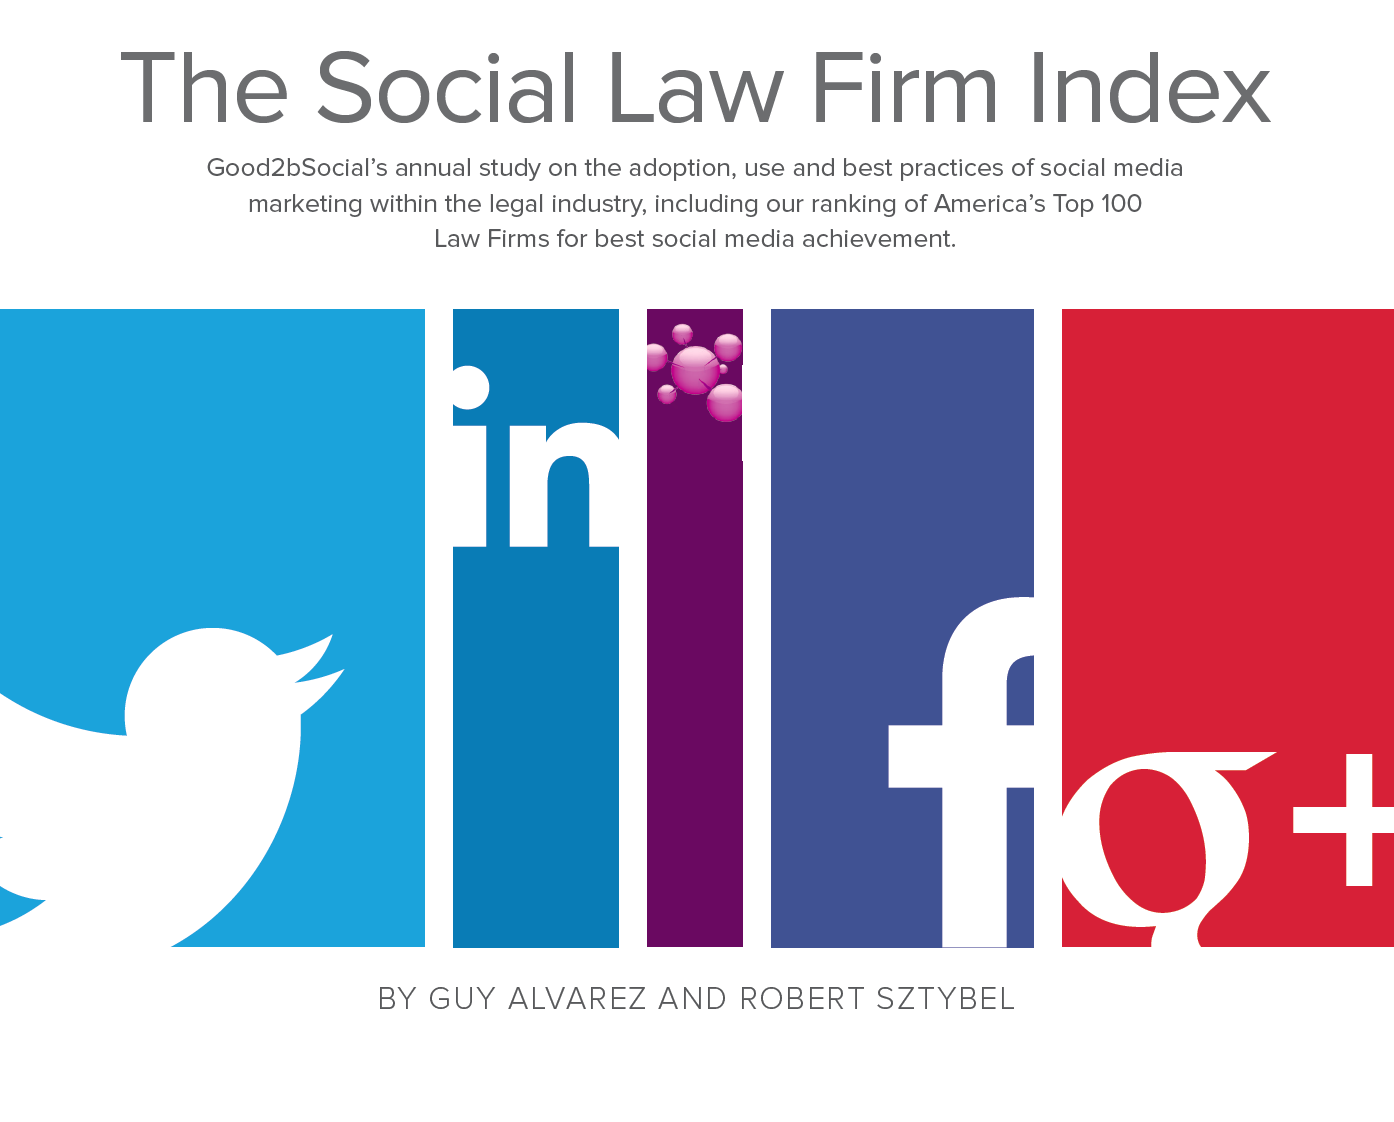 The Social Law Firm Index for Good2bSocial